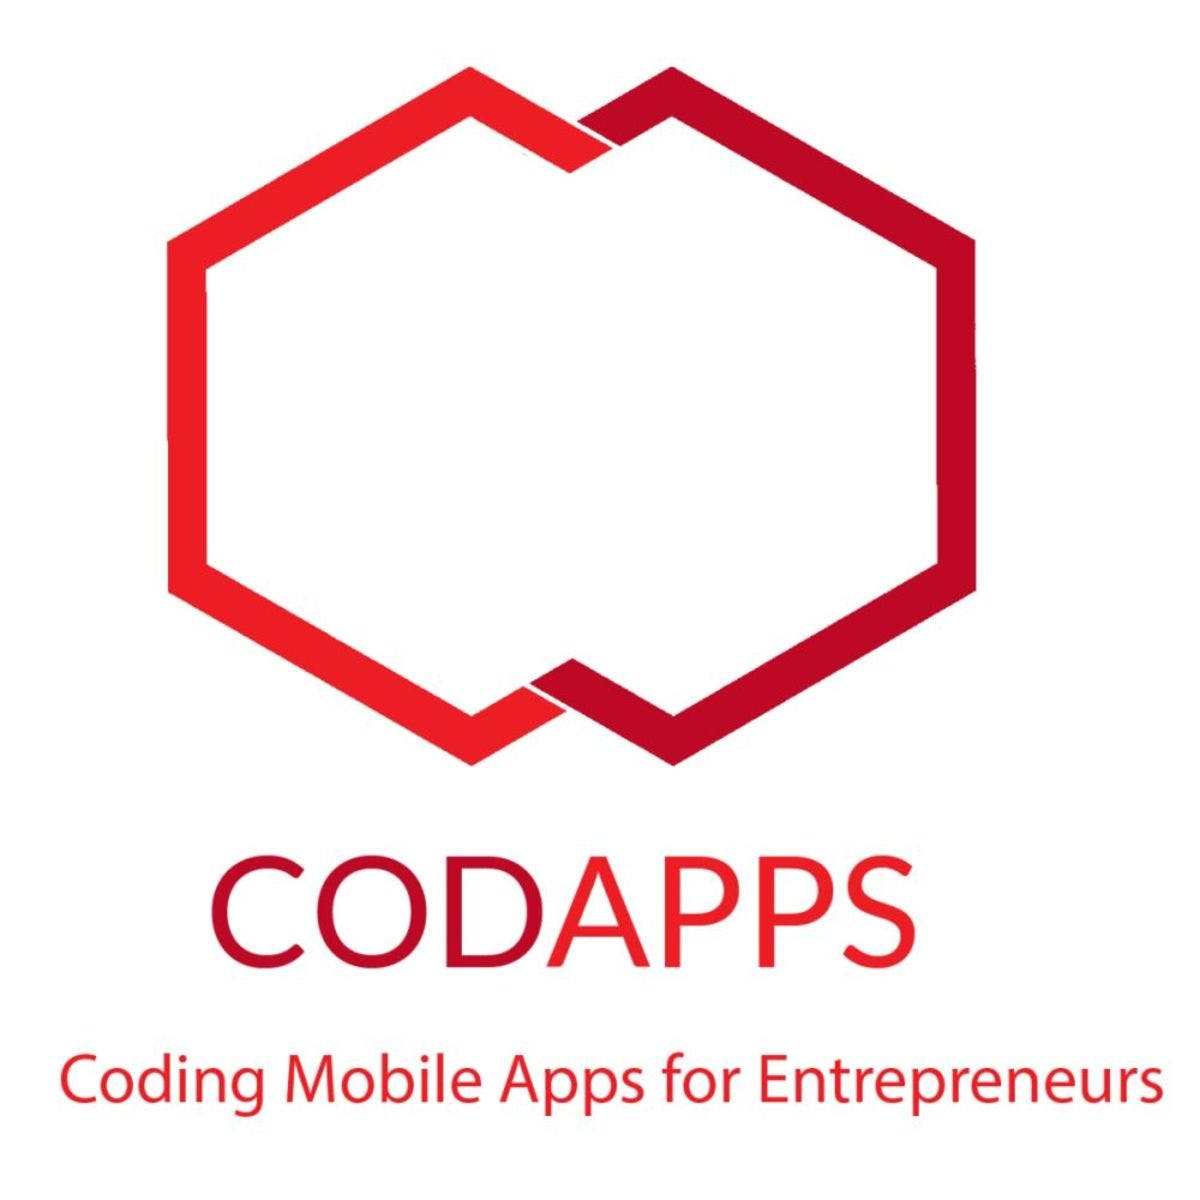 CODAPPS: Coding mobile apps for entrepreneurs